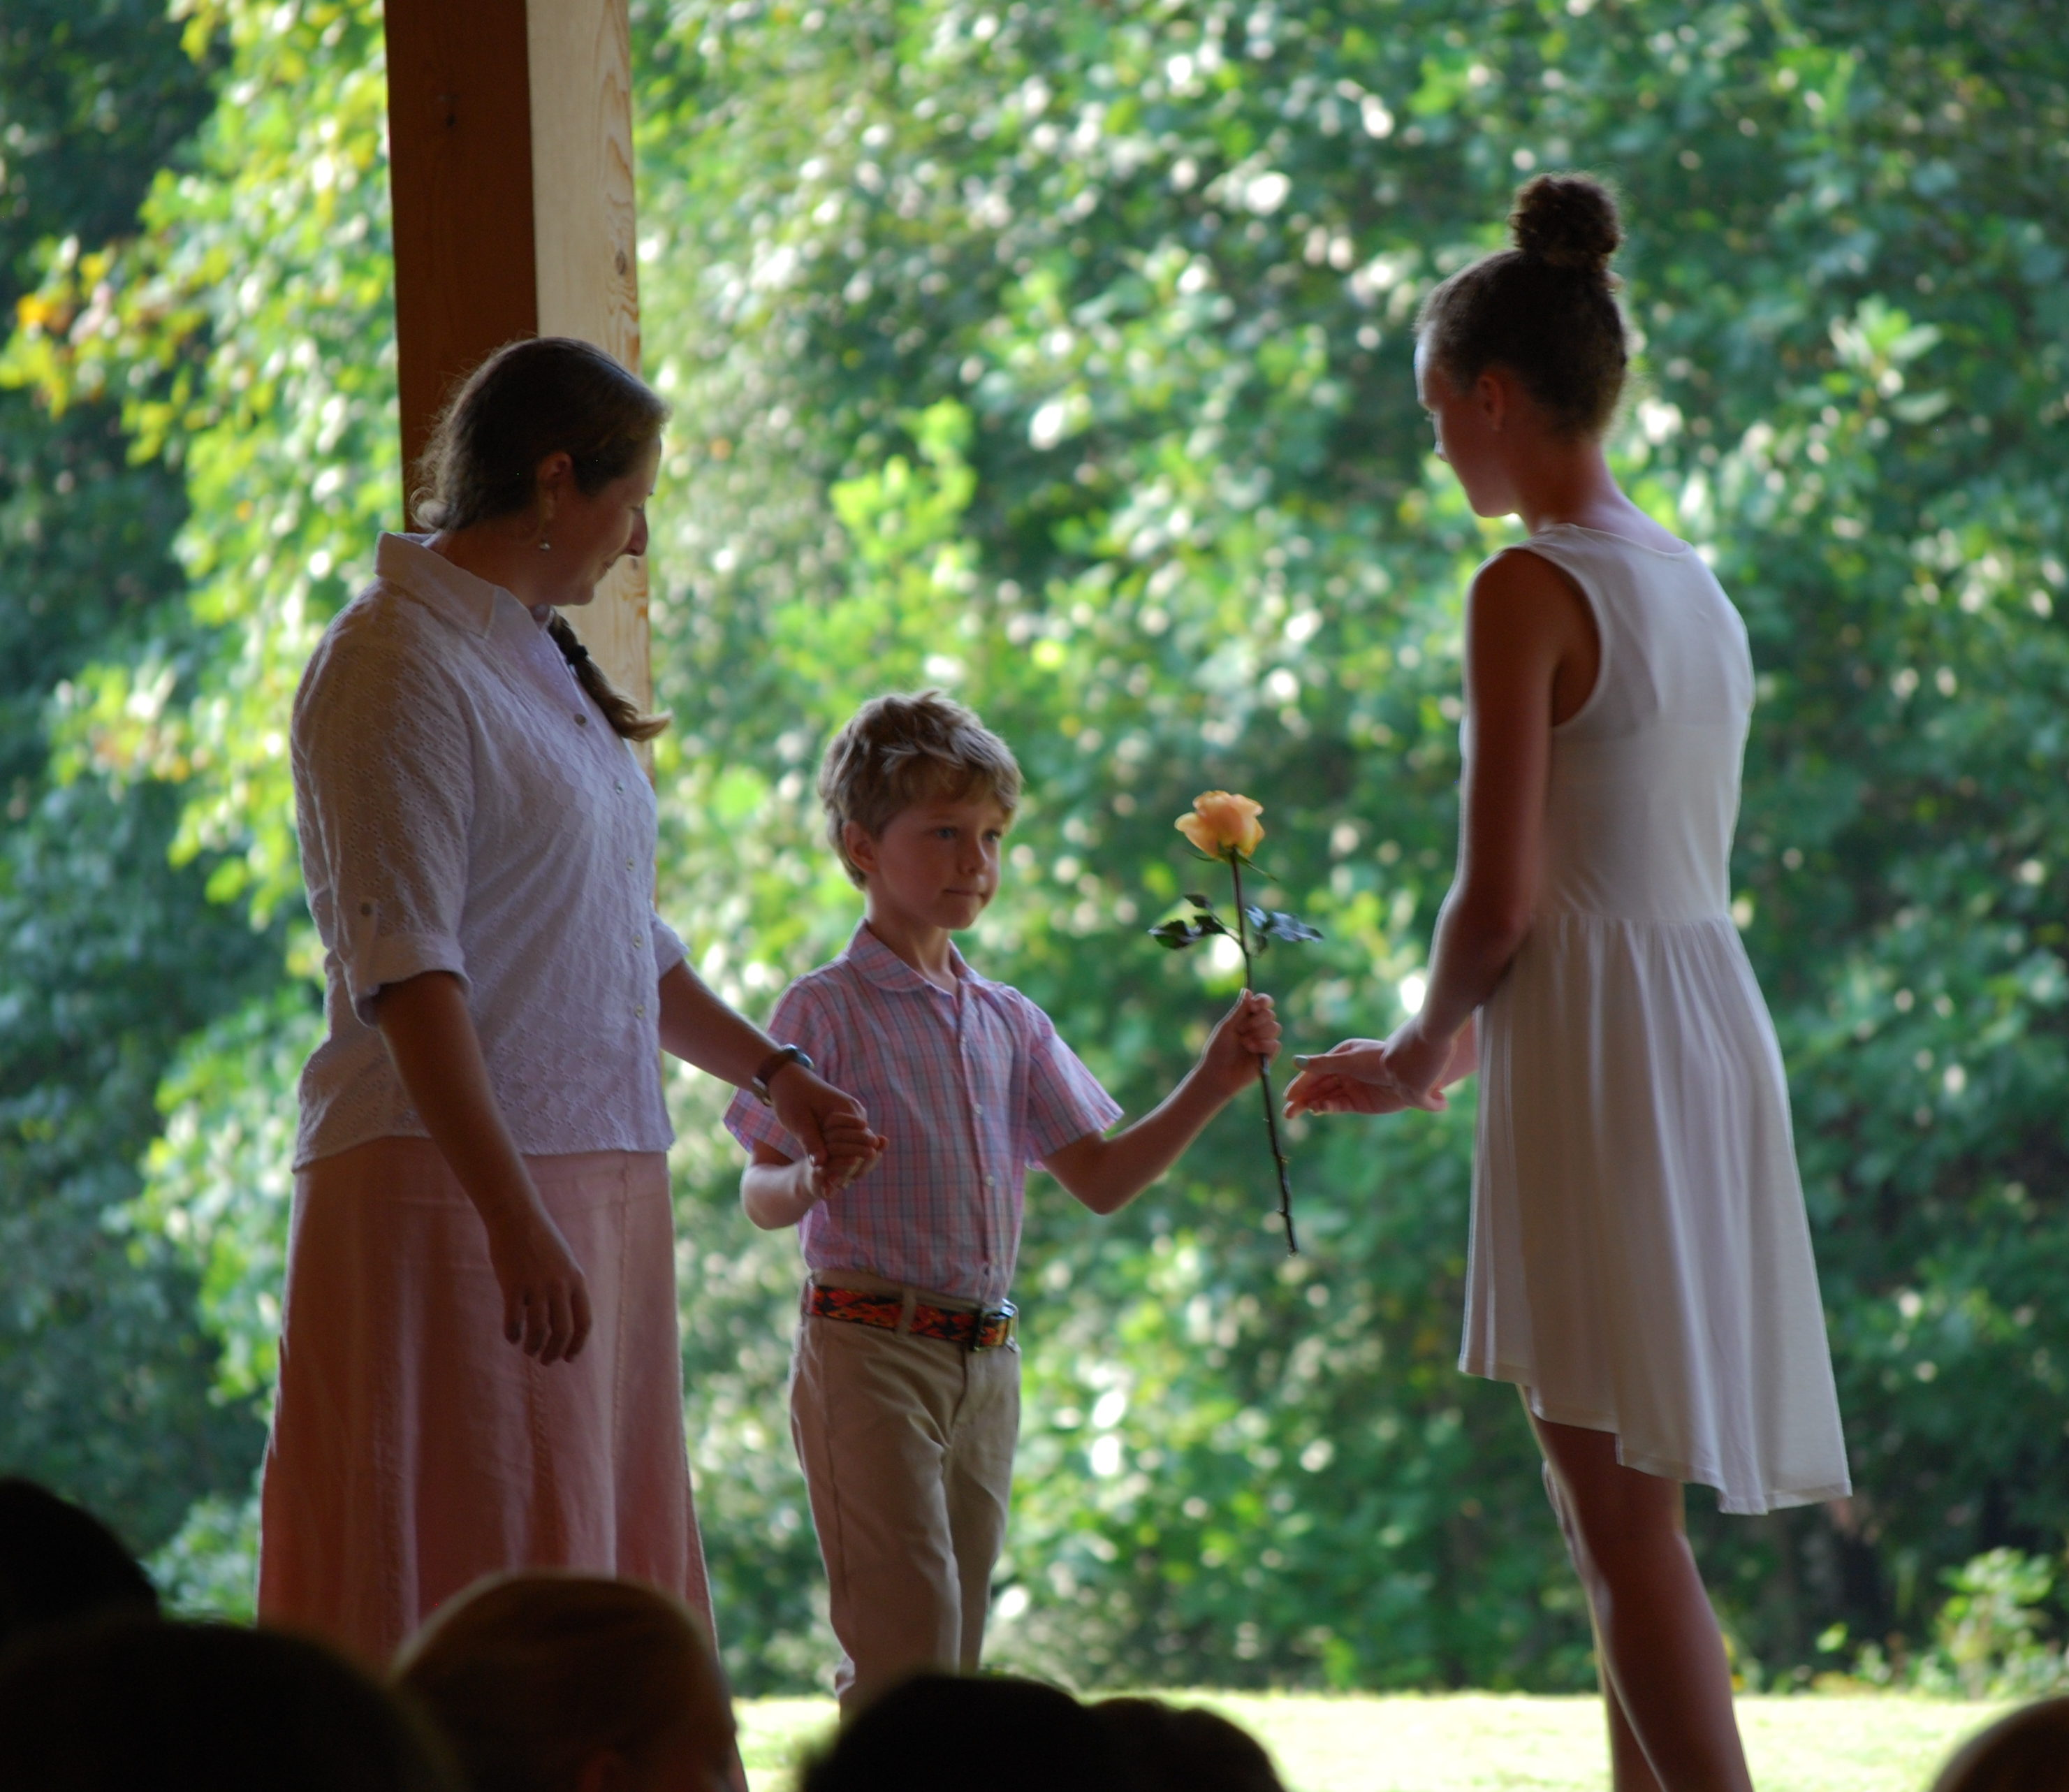 First Day of First Grade Rose Ceremony at the Waldorf School